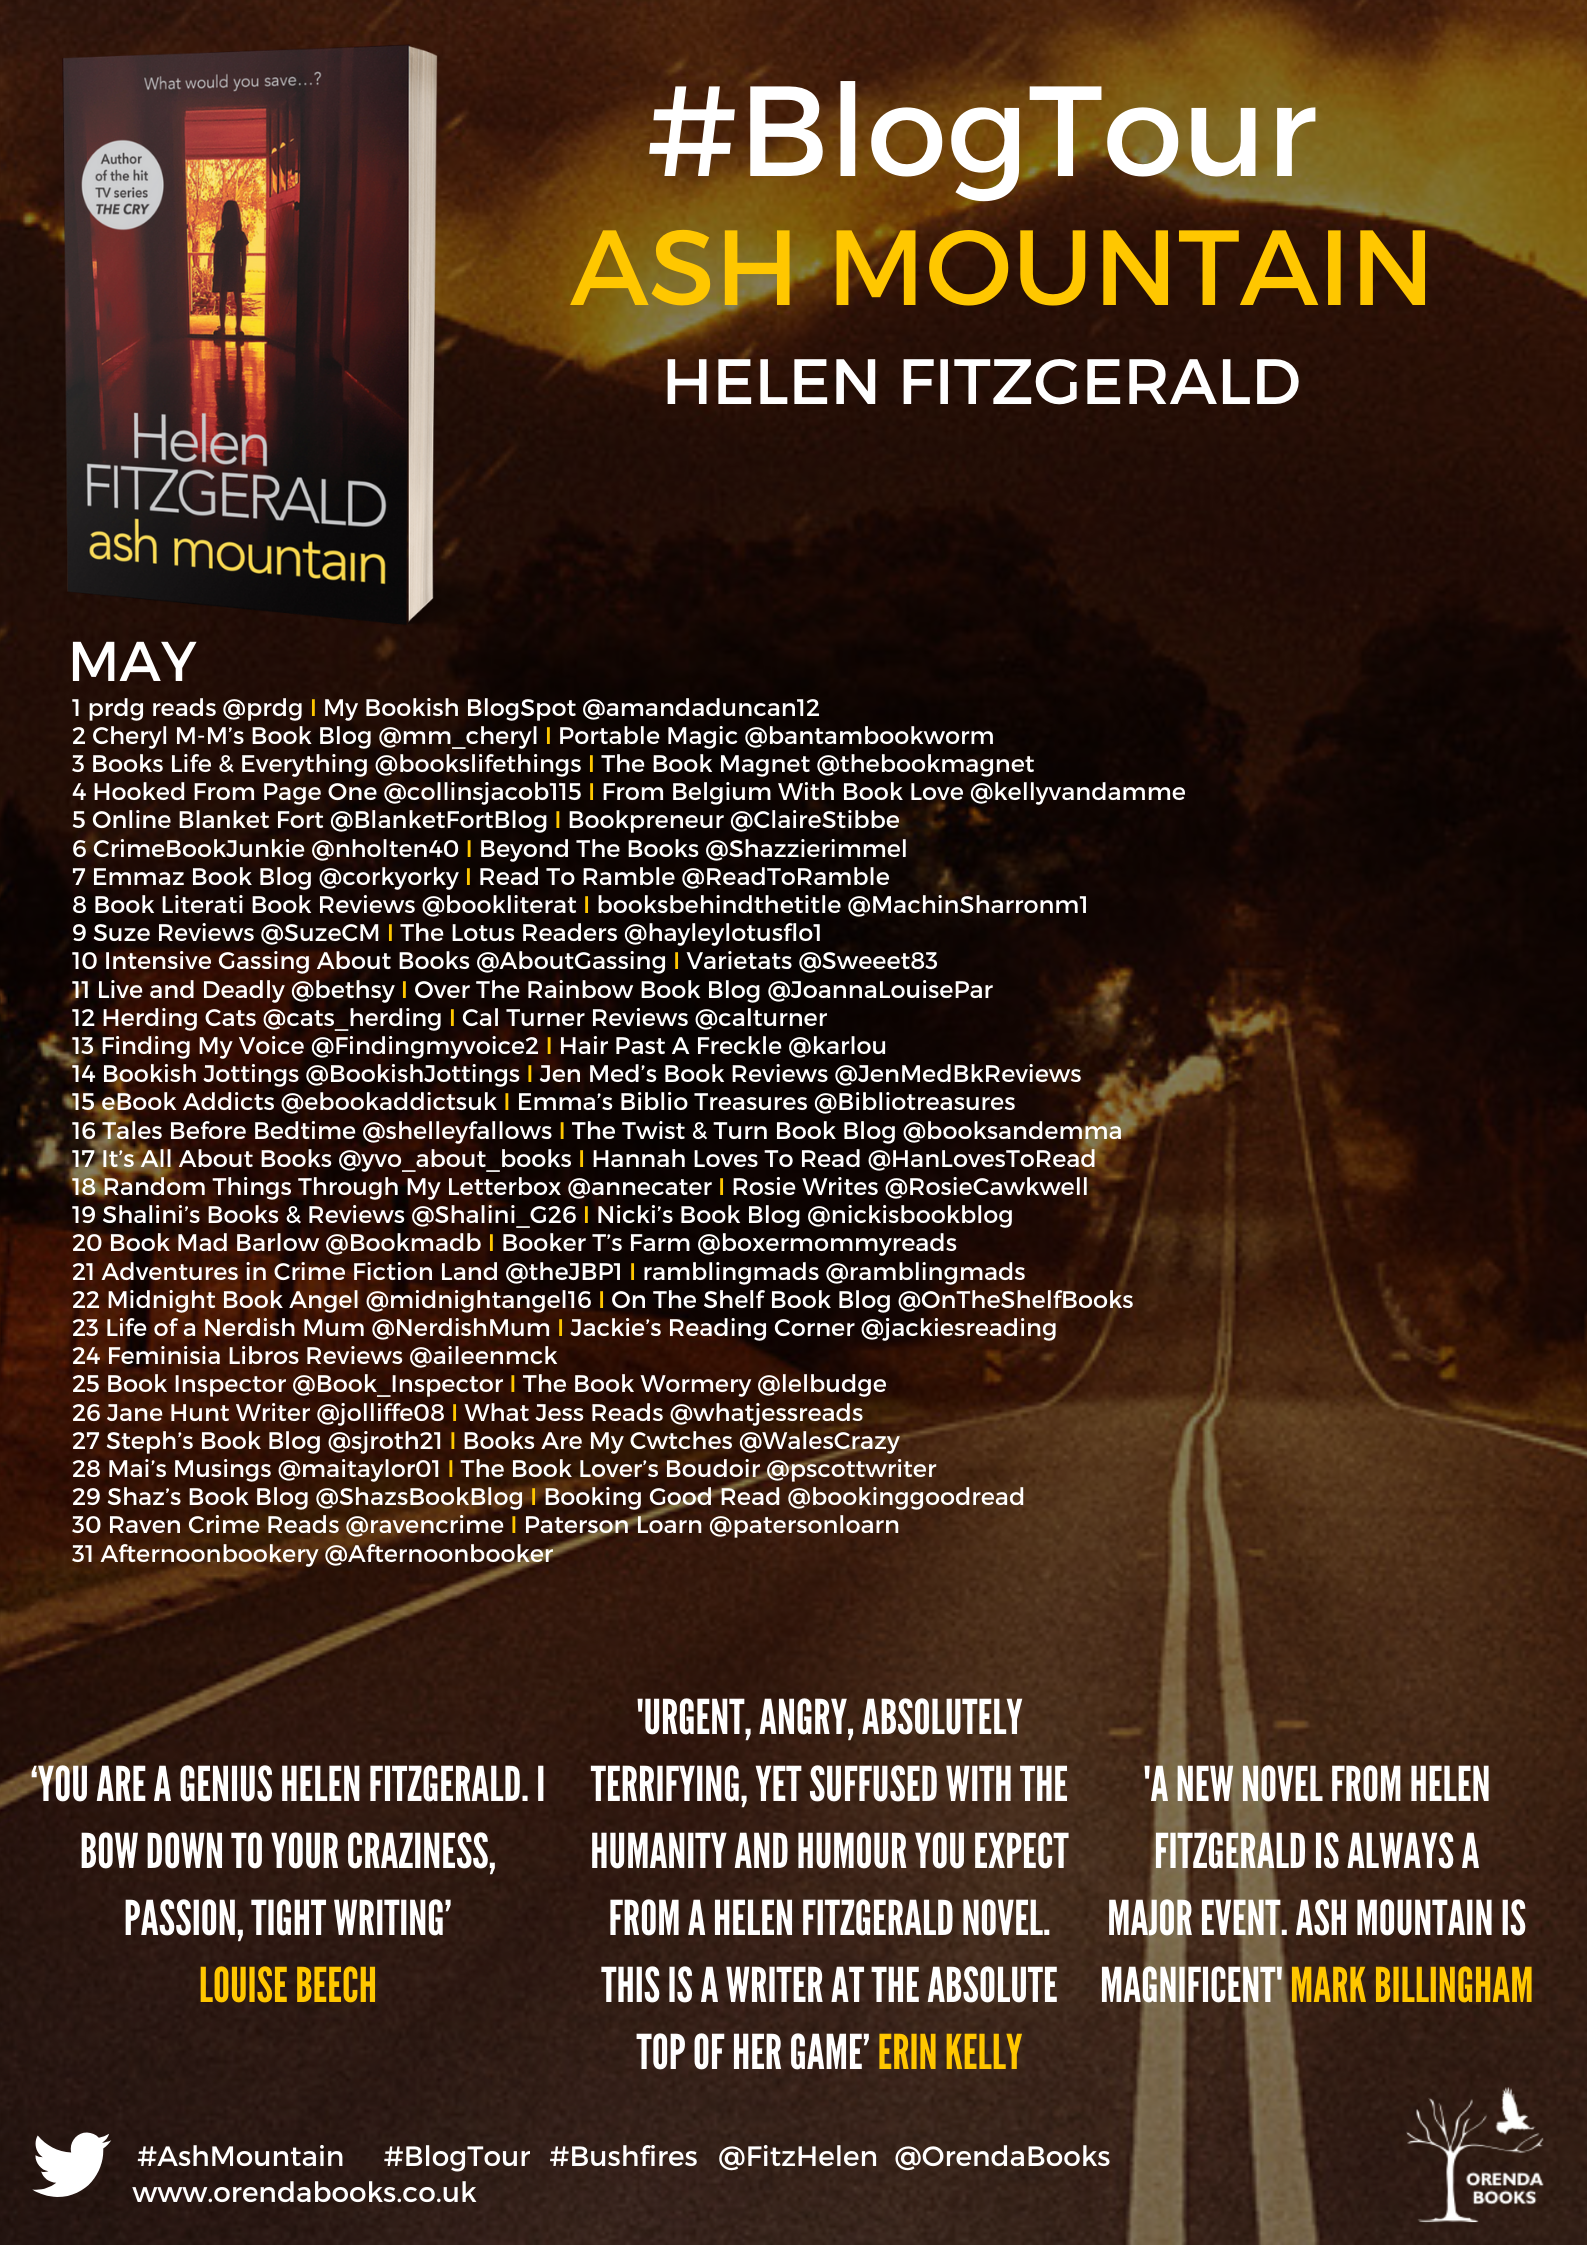 Helen Fitzgerald FINAL Ash Mountain BT Poster (2)